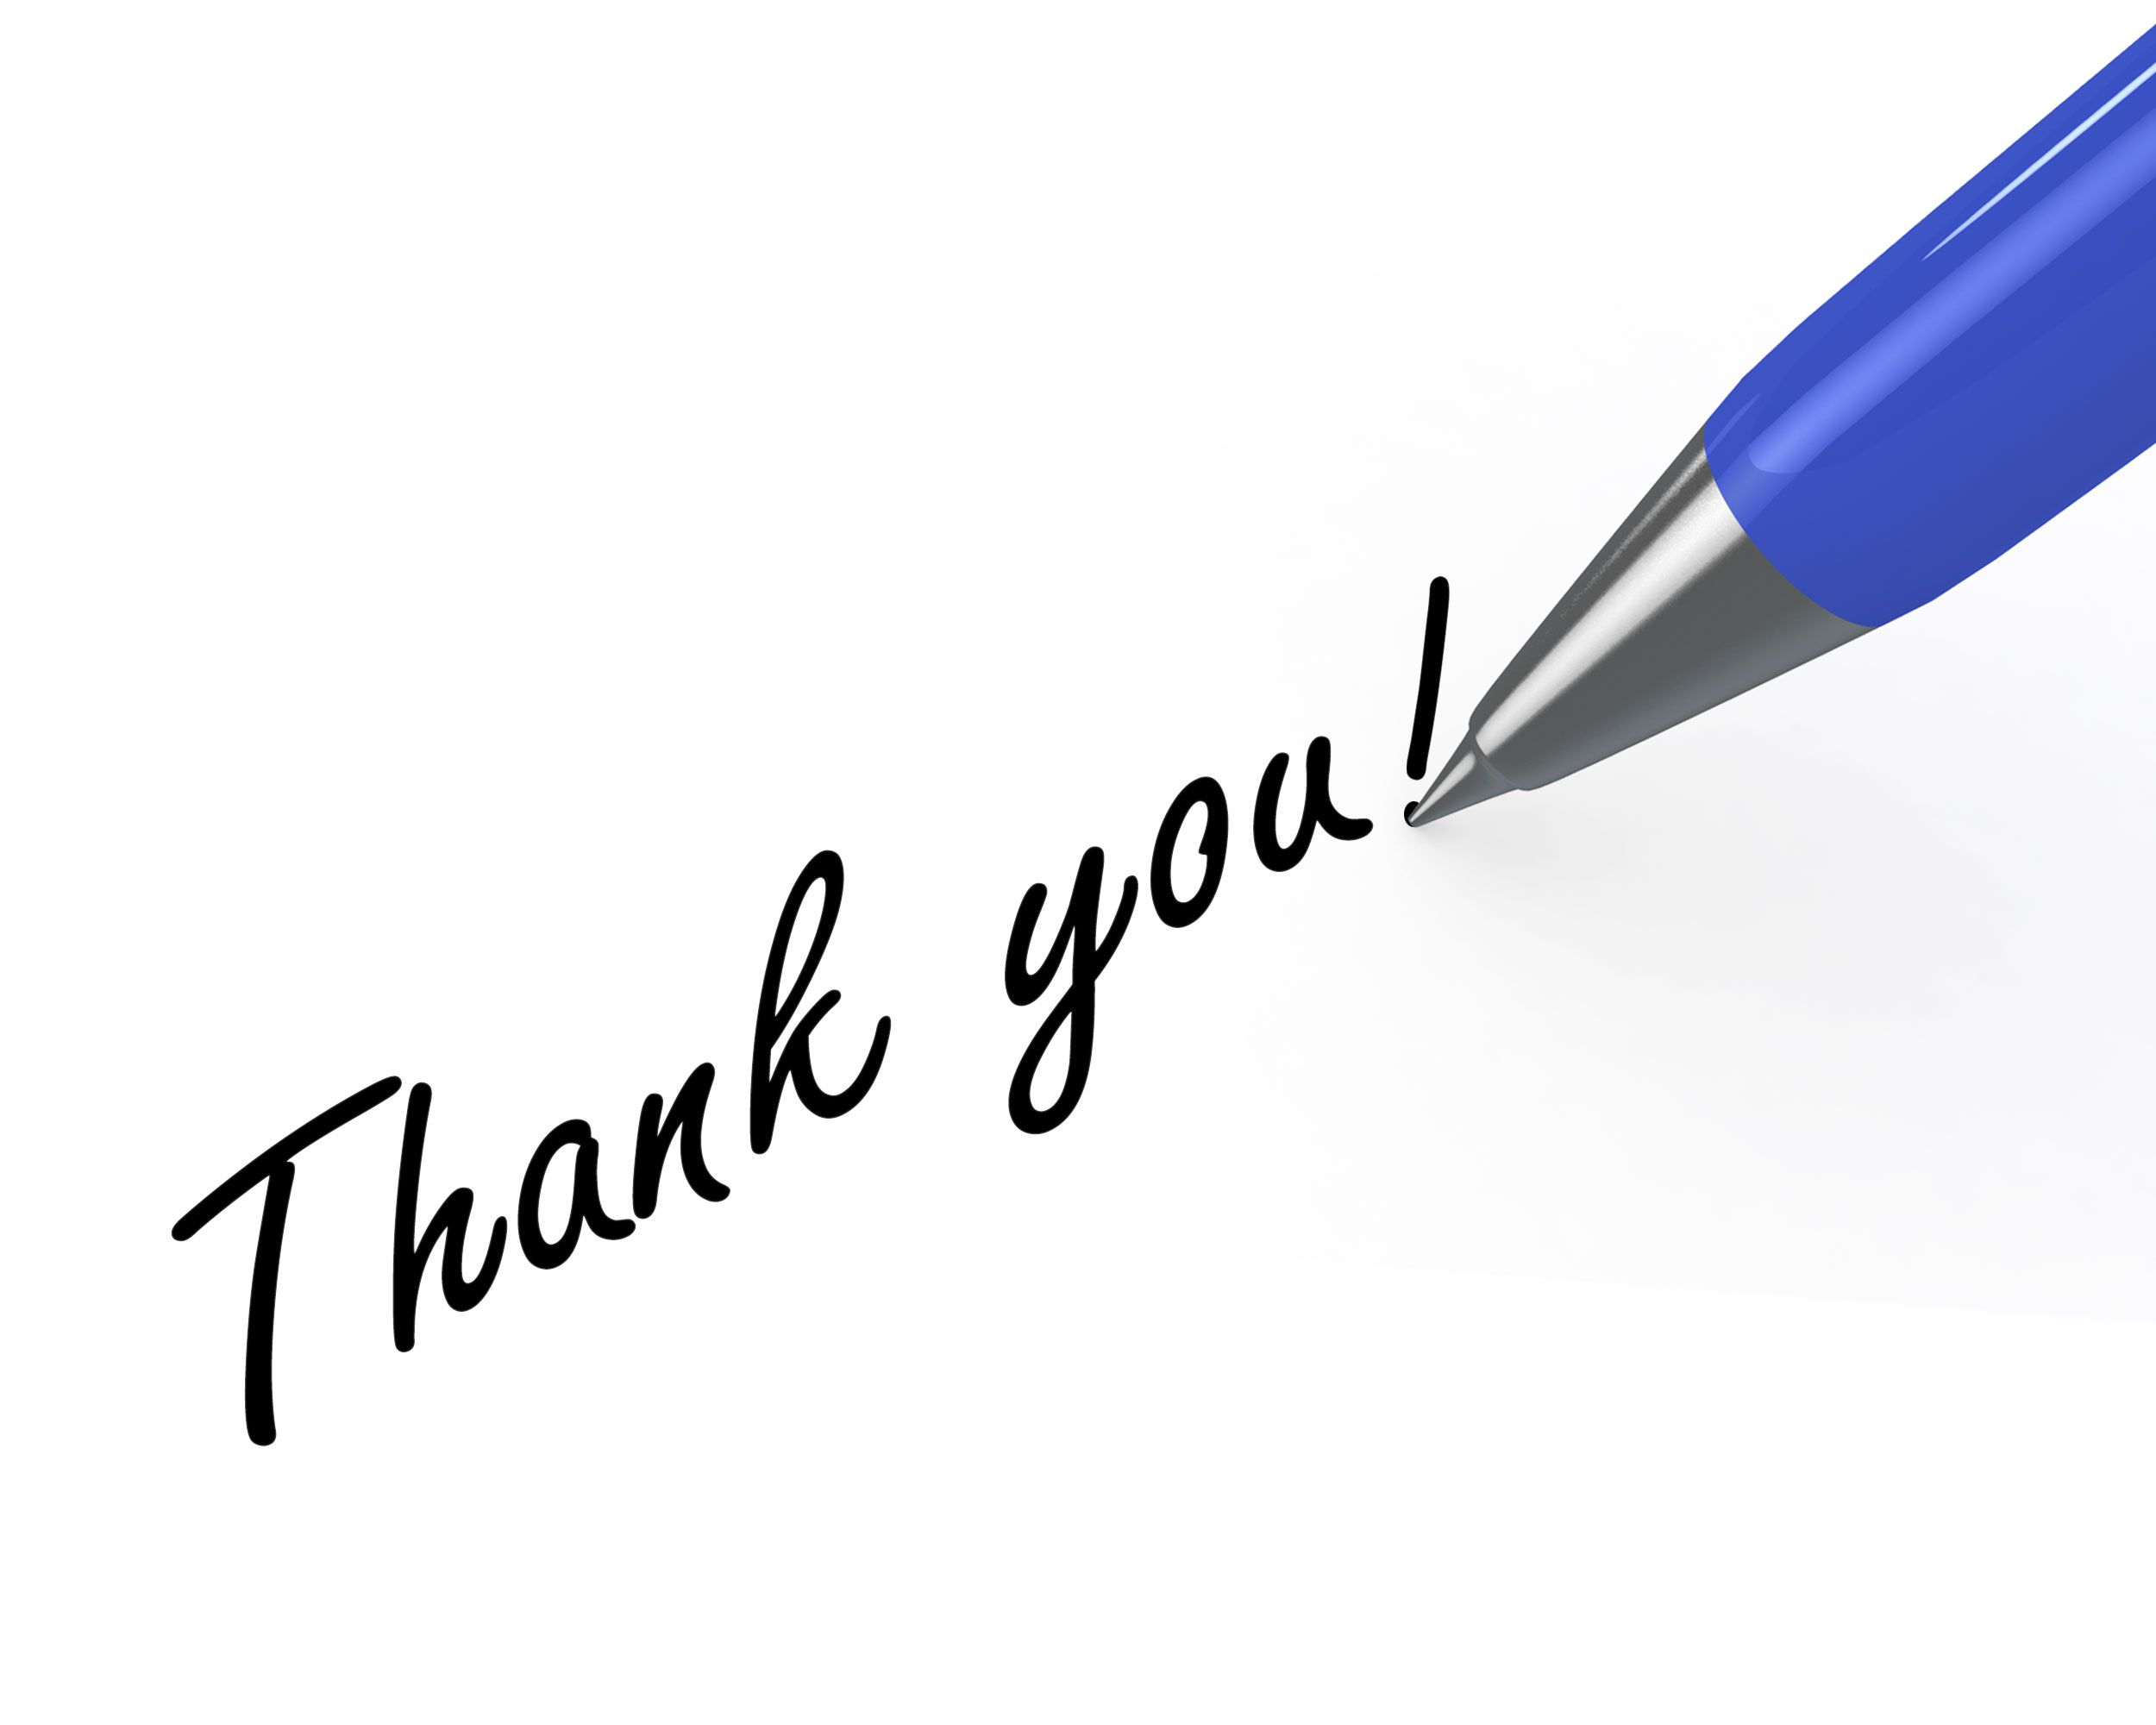 0914 thank you note with blue pen on white background stock photo, Presentation templates